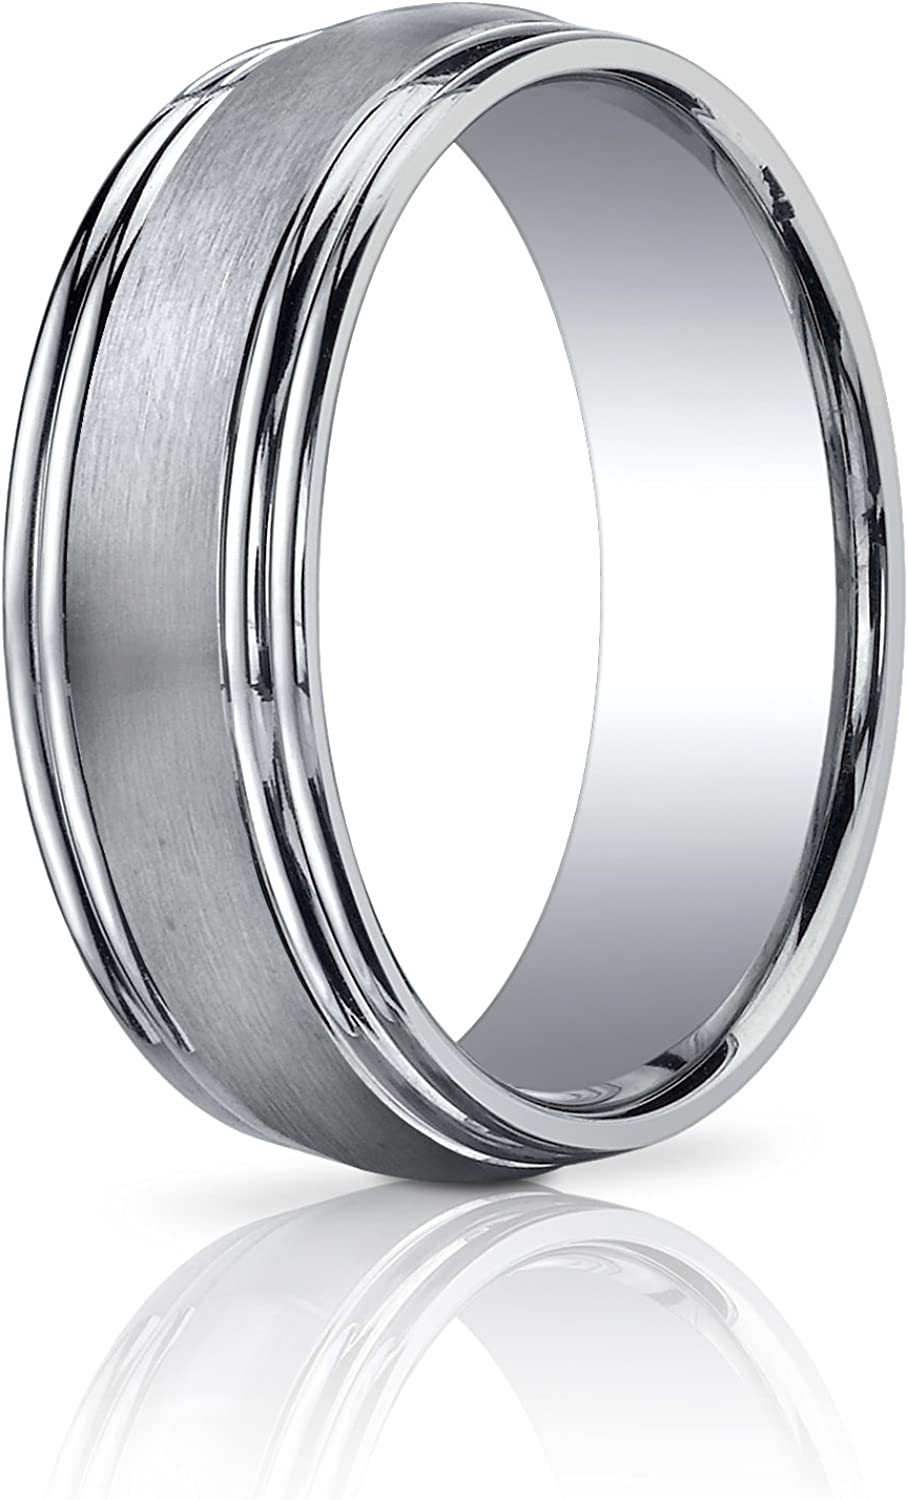 Women's 14K White Gold Sales OFFicial store results No. 1 7.5mm Comfort Fit Finished Double E Satin